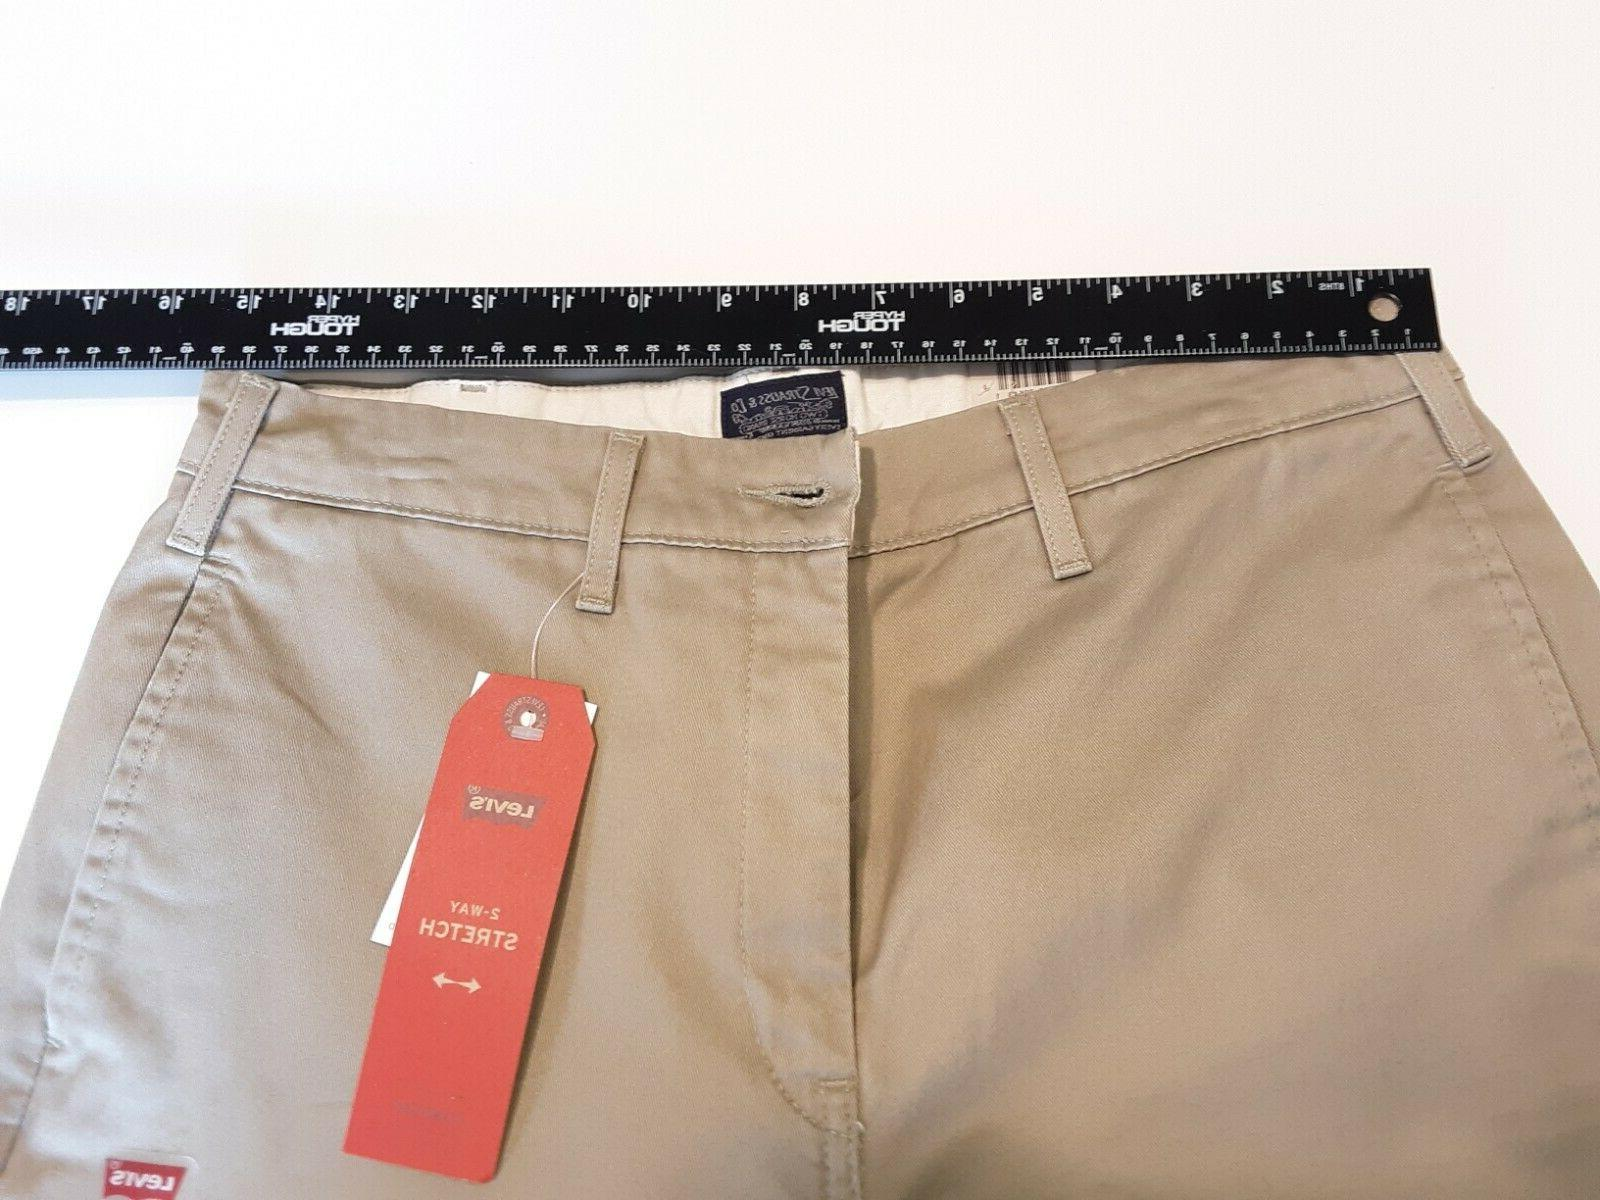 Levi'sMen's Chino Jeans Pants To Ankle